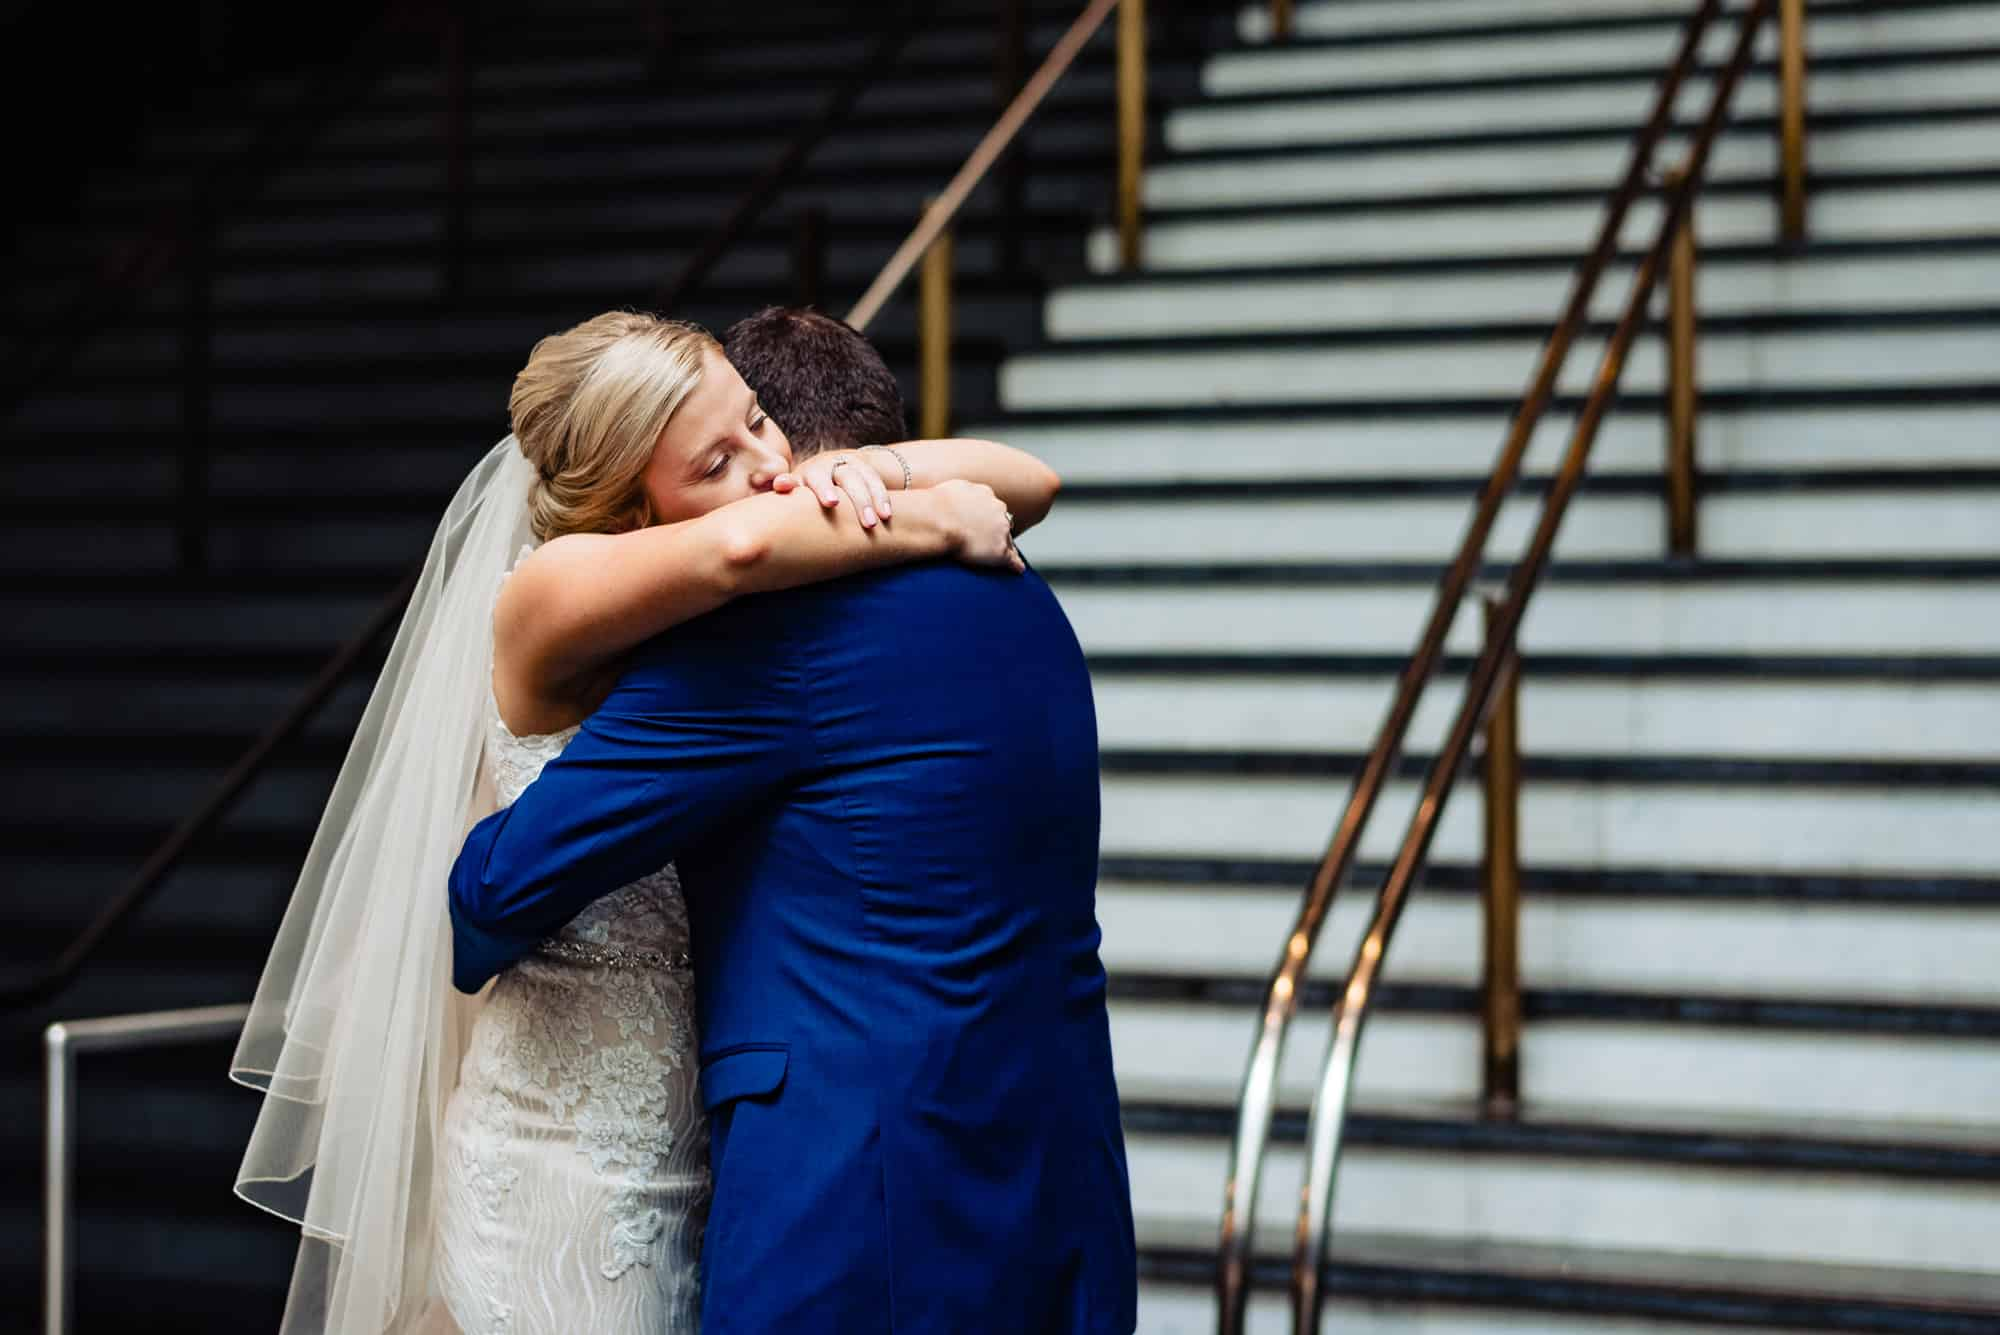 wedding day, bride and groom hugging each other tightly in a staircase